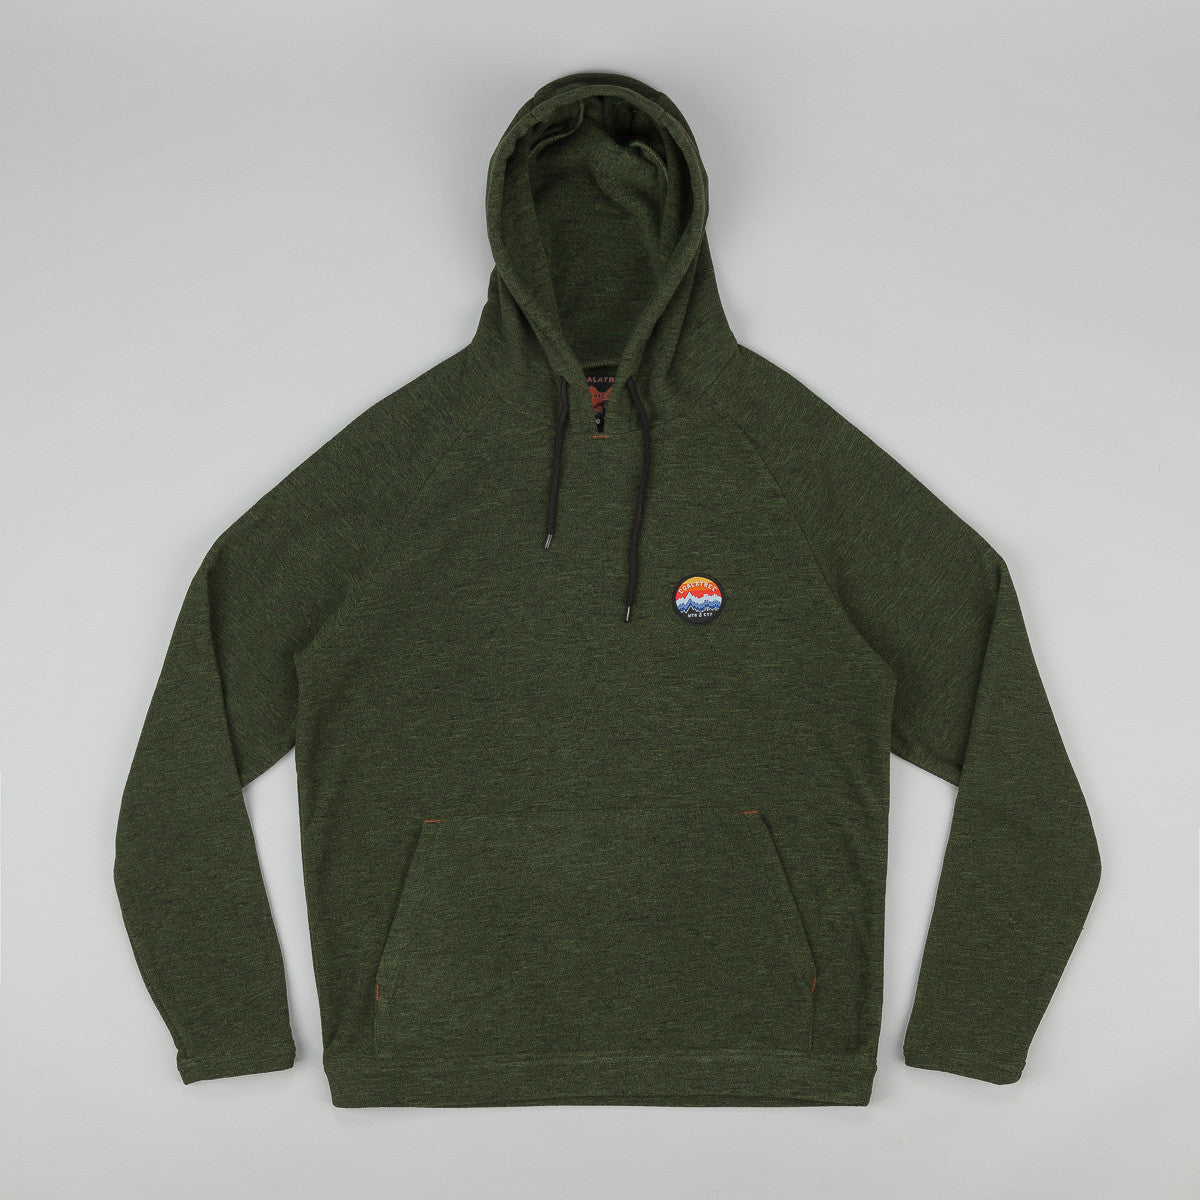 Coalatree Cabin Fever Hooded Sweatshirt - Forest